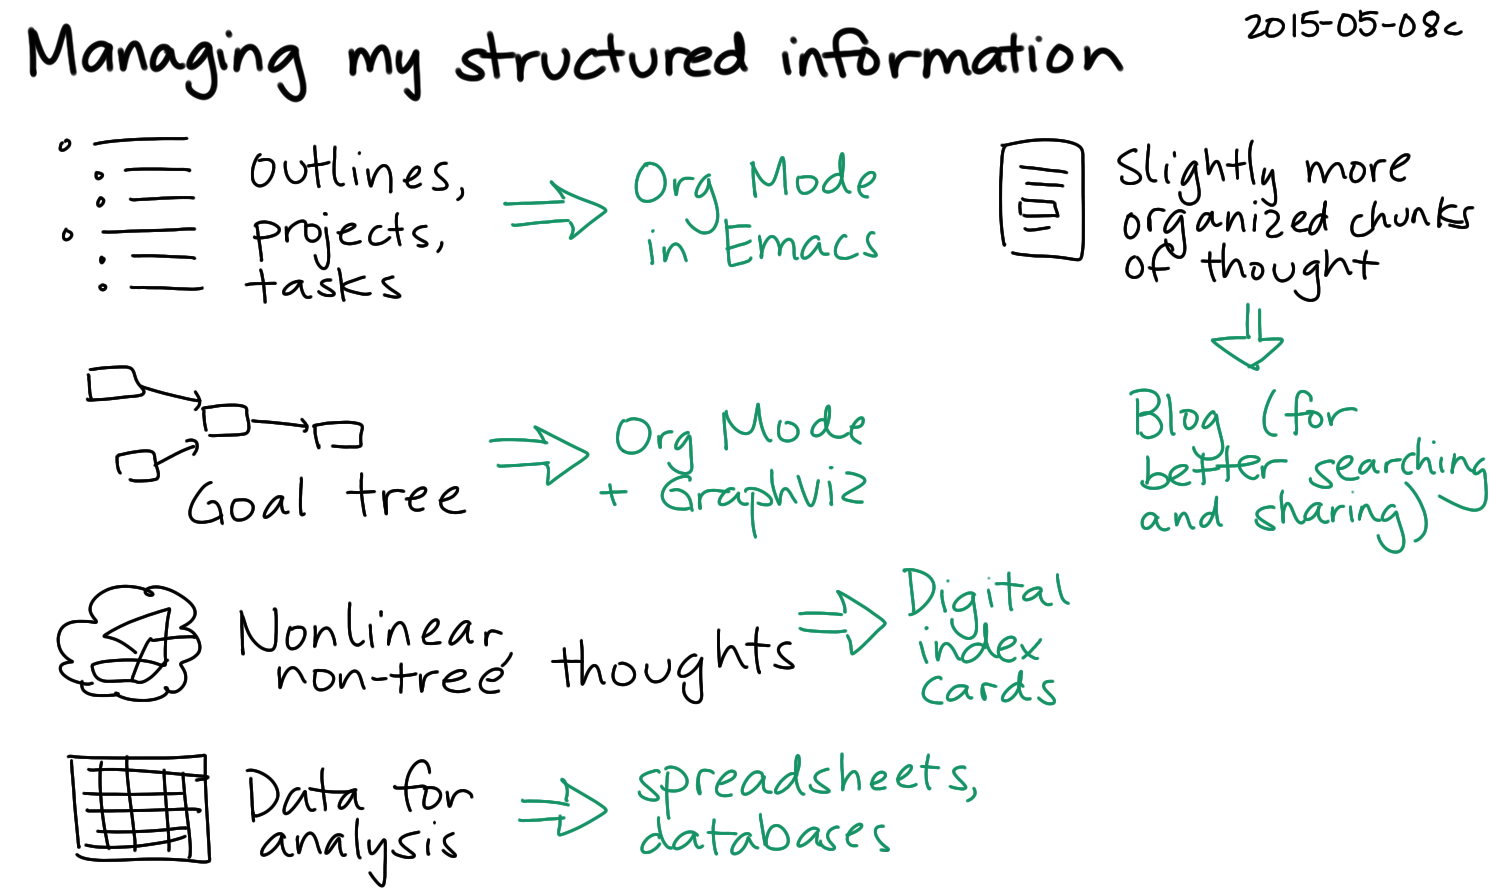 2015-05-08c Managing my structured information -- index card #pkm #knowledge #sharing.png